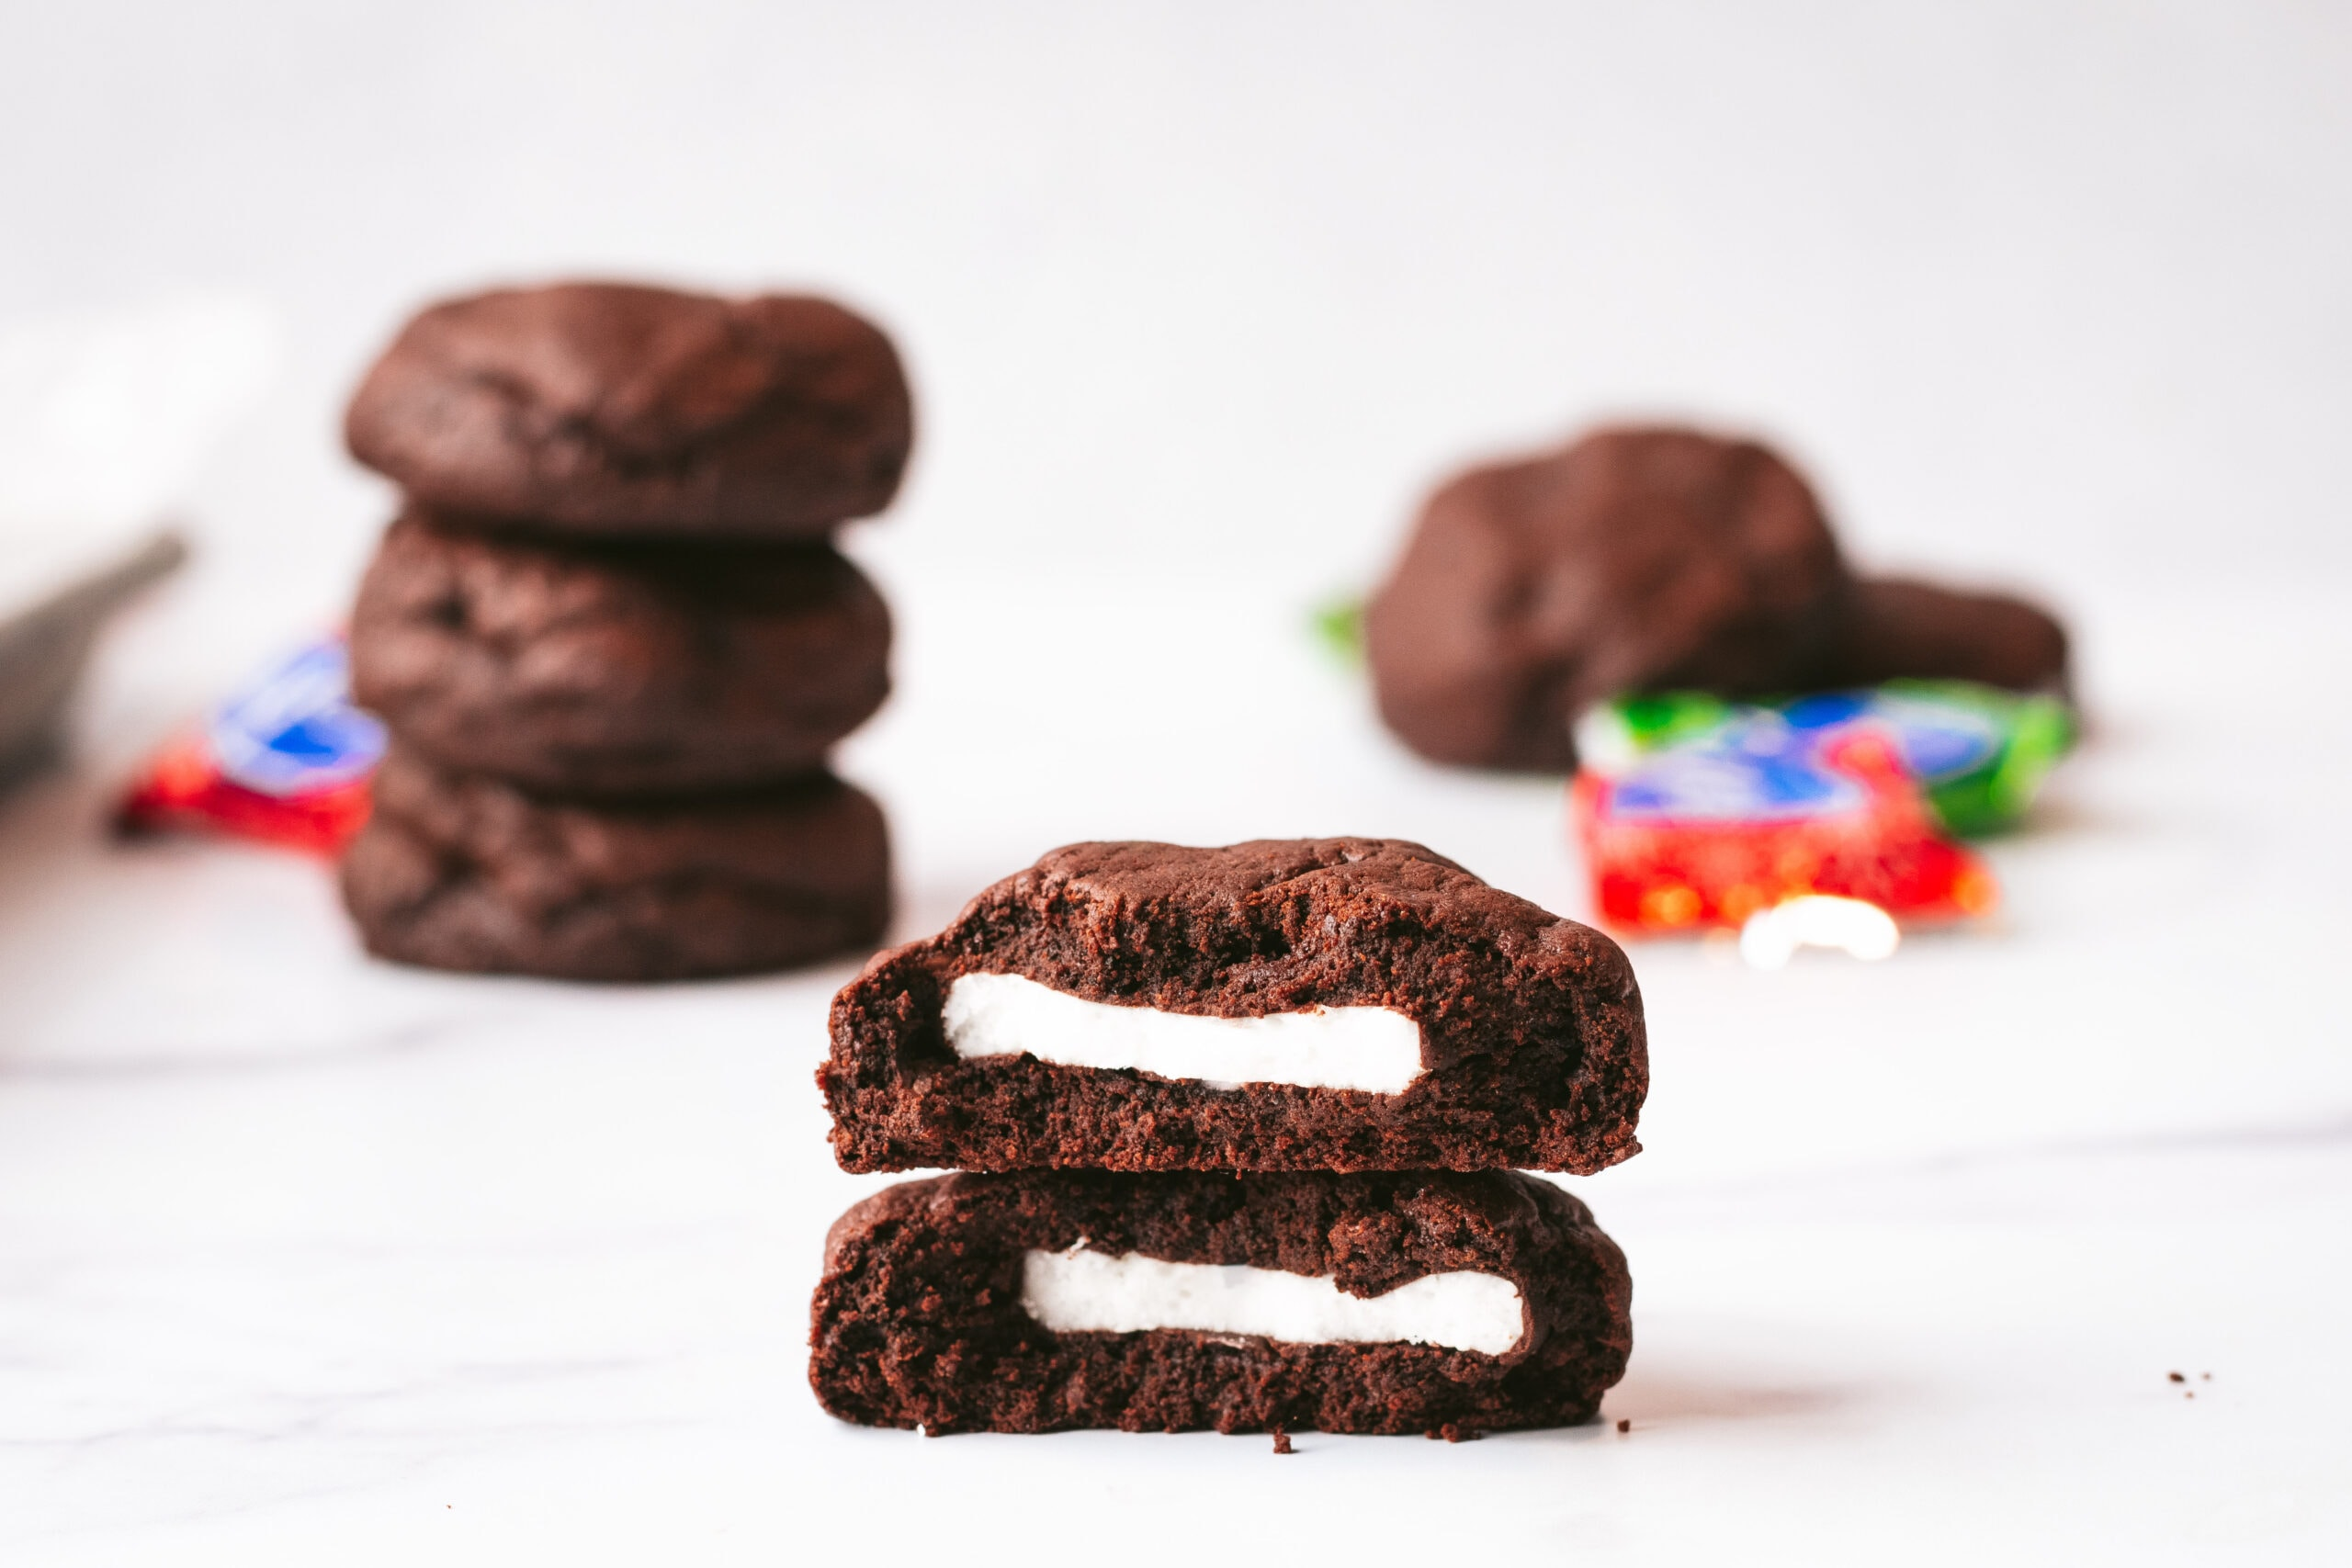 a close up of a cookie broken in half and stacked on top of itself, revealing the mint center.